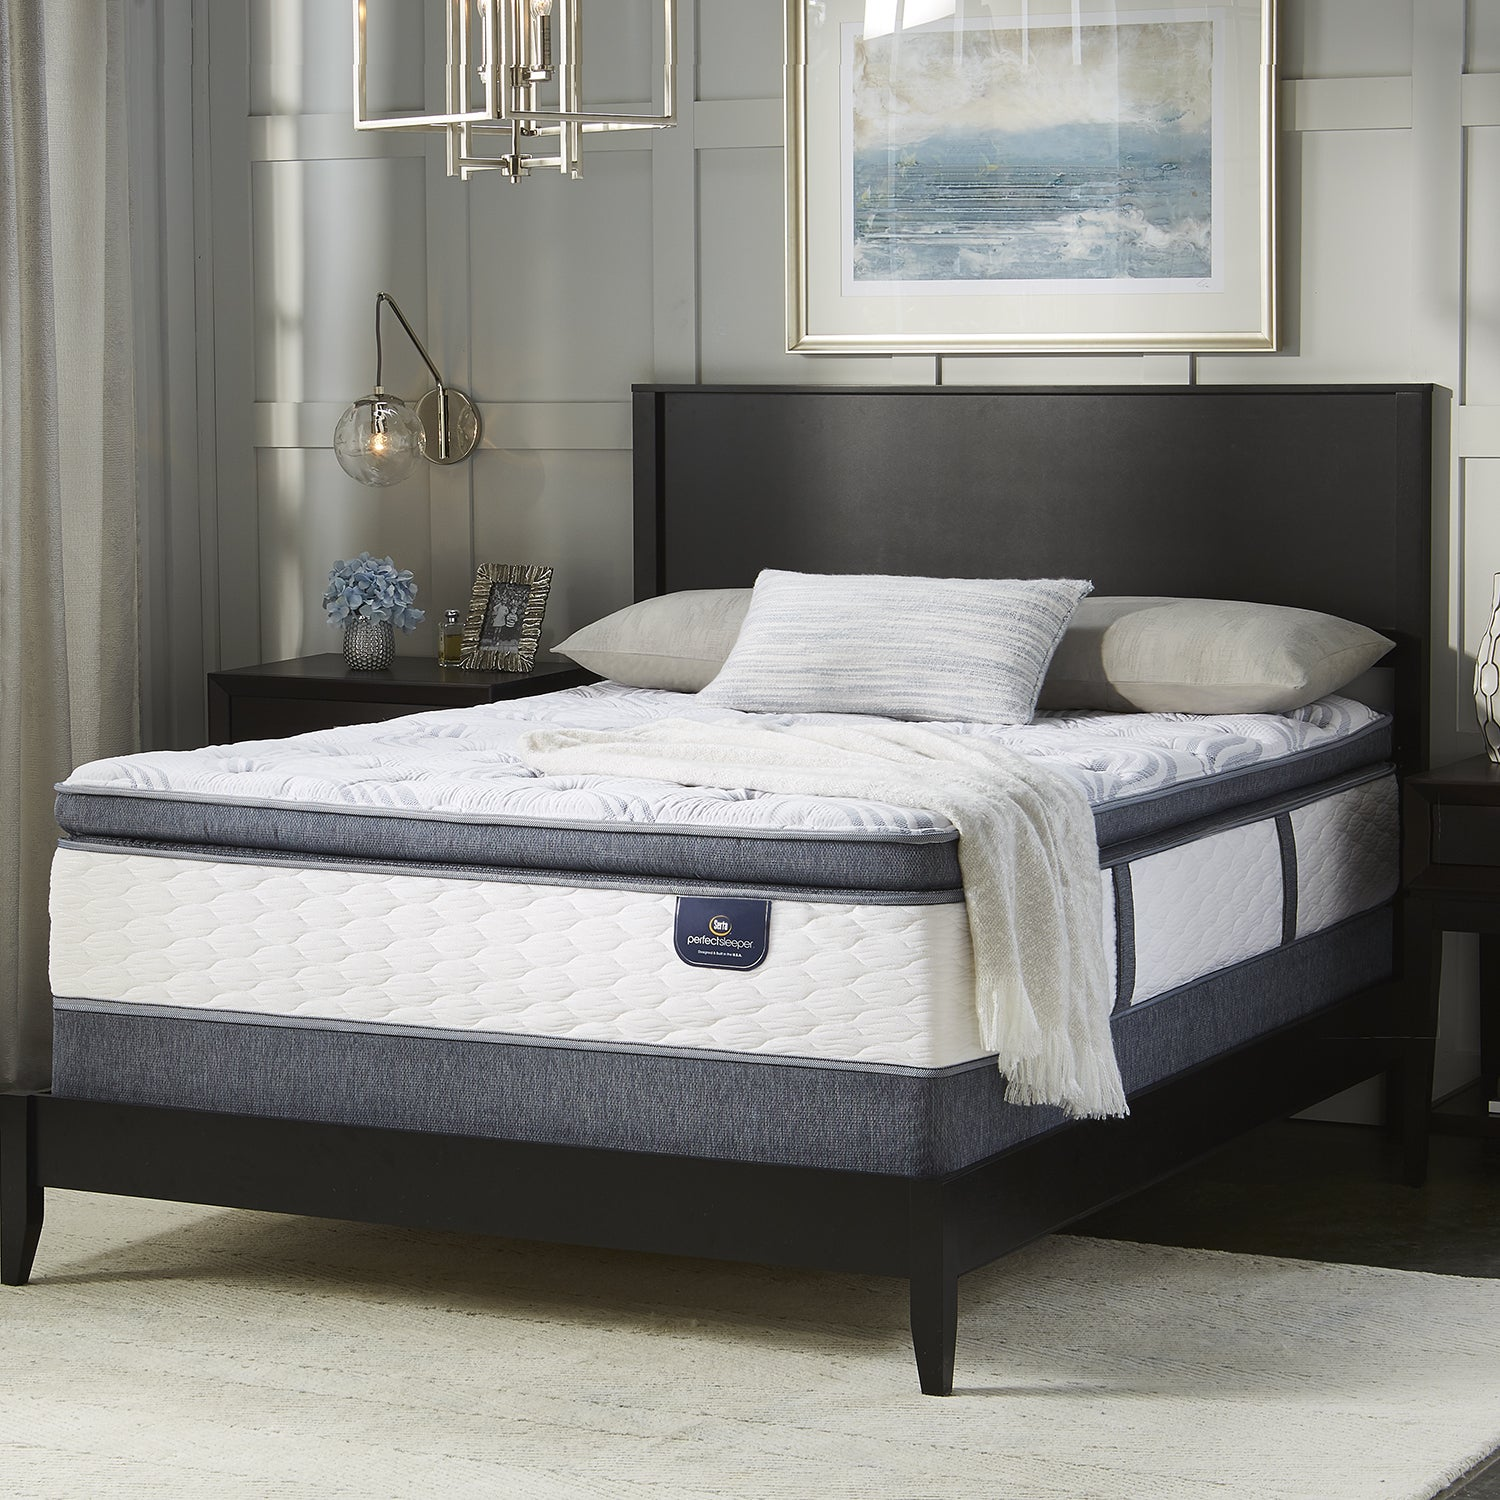 Serta Wayburn Super Pillow Top Split Queen-size Mattress ...